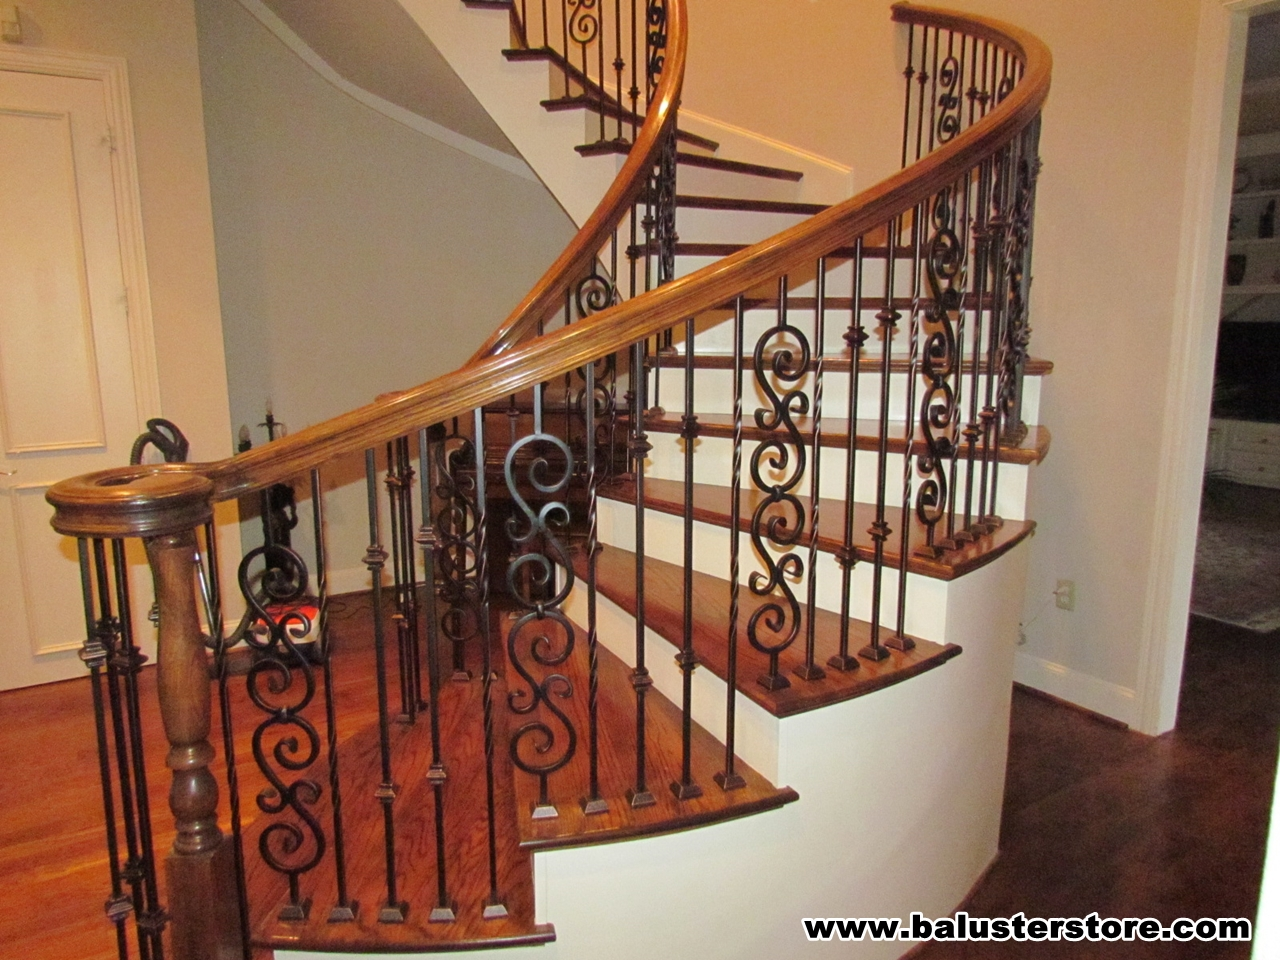 Double scroll, double knuckle, double twist .  Stair railing